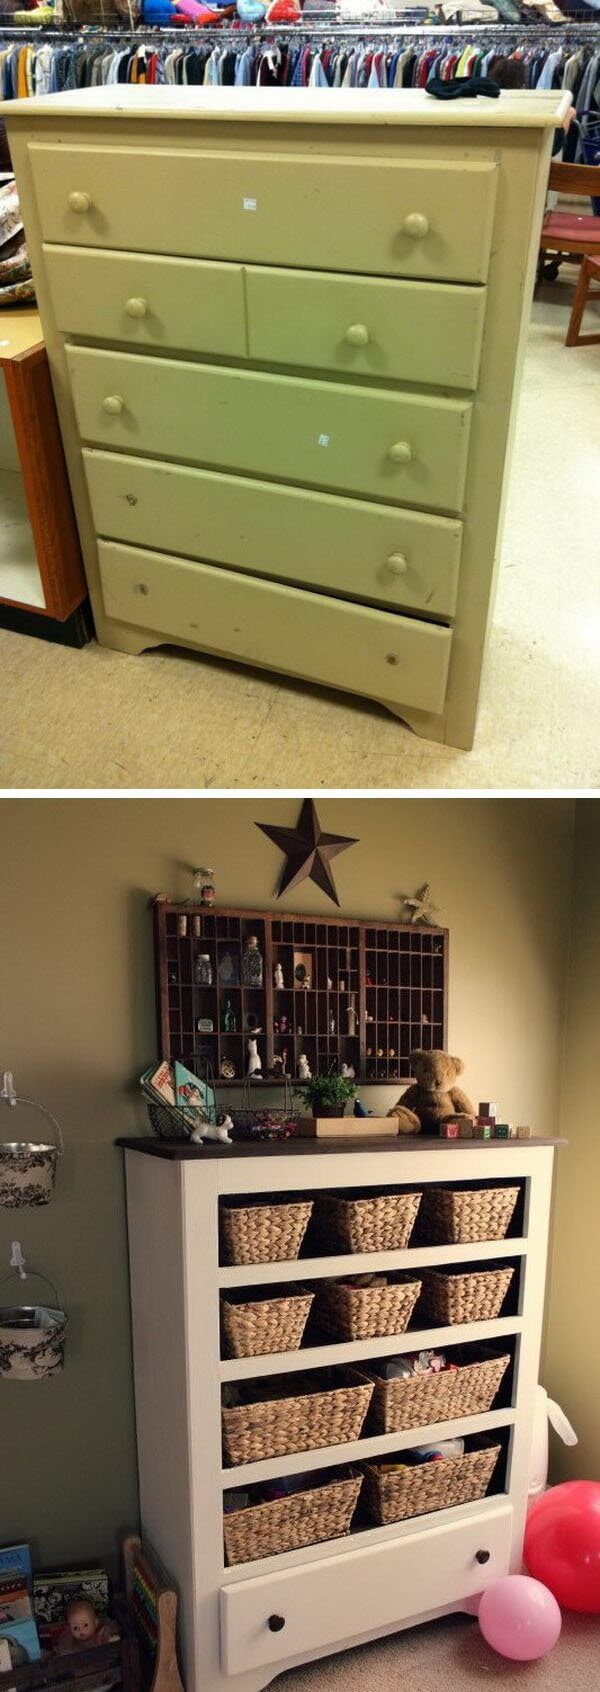 Captivating 36 Furniture Makeover Ideas To Update Your Home